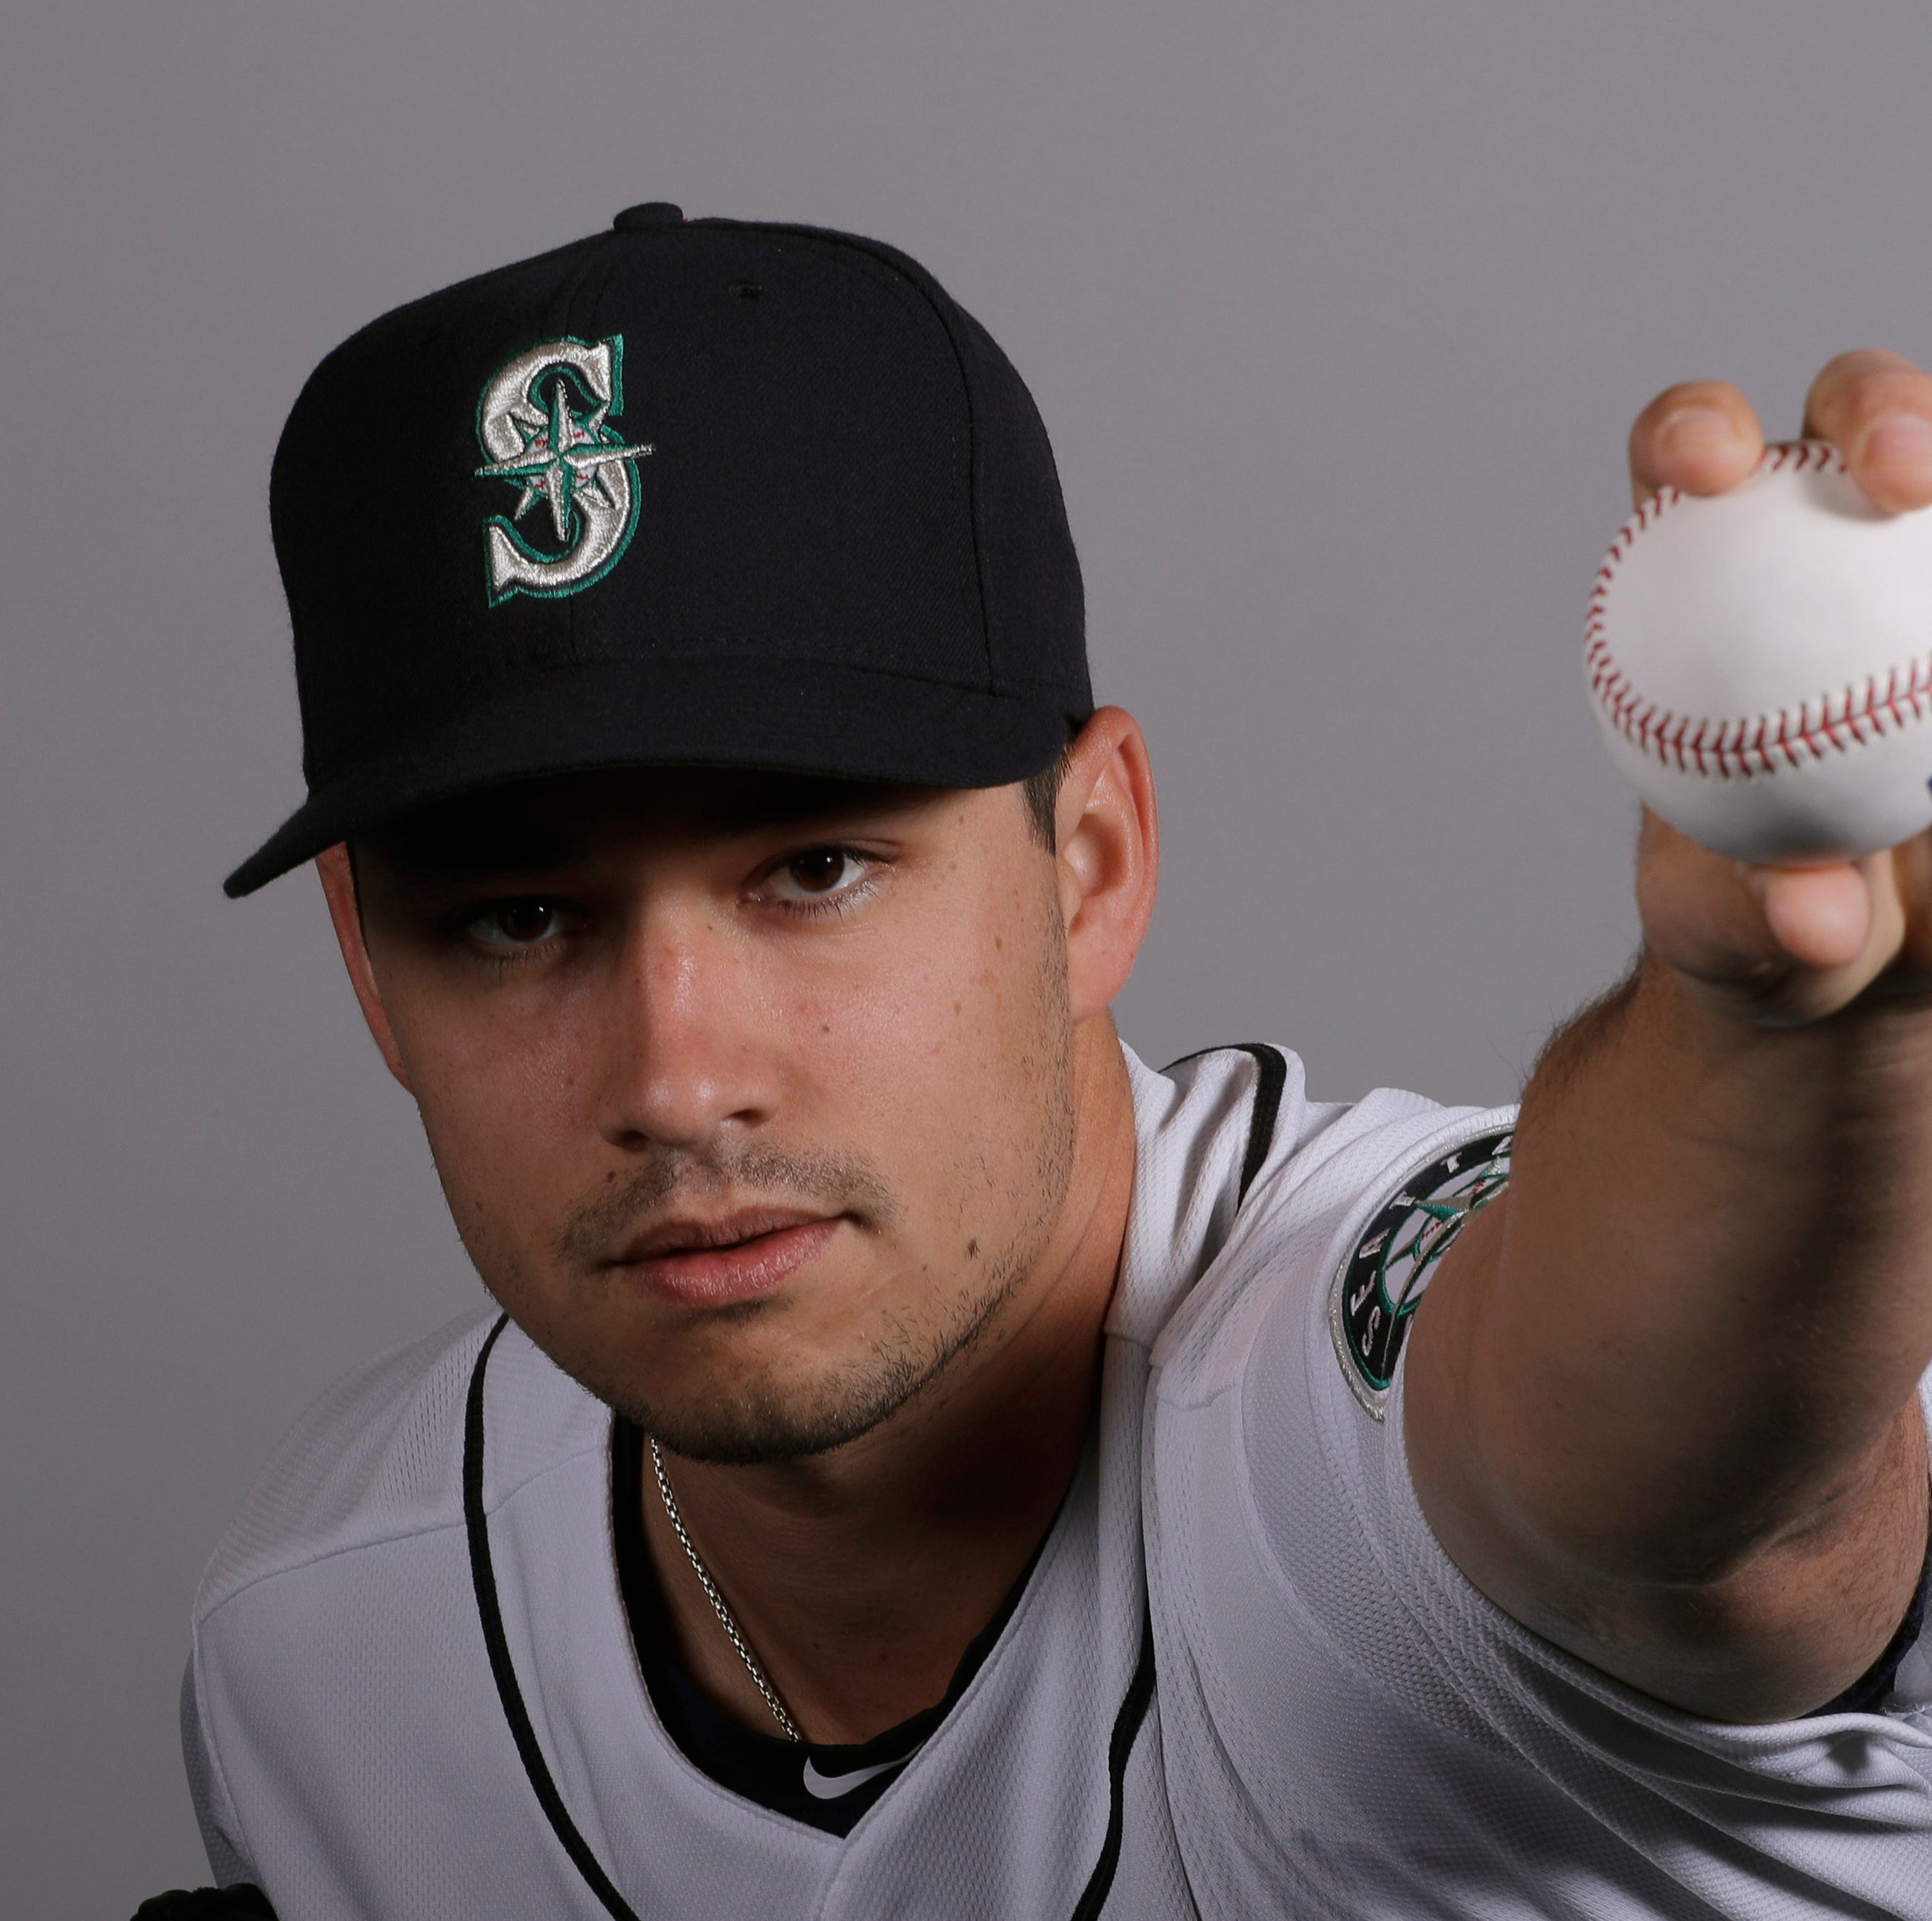 Fort Collins native Marco Gonzales gets start on MLB's opening day in Japan